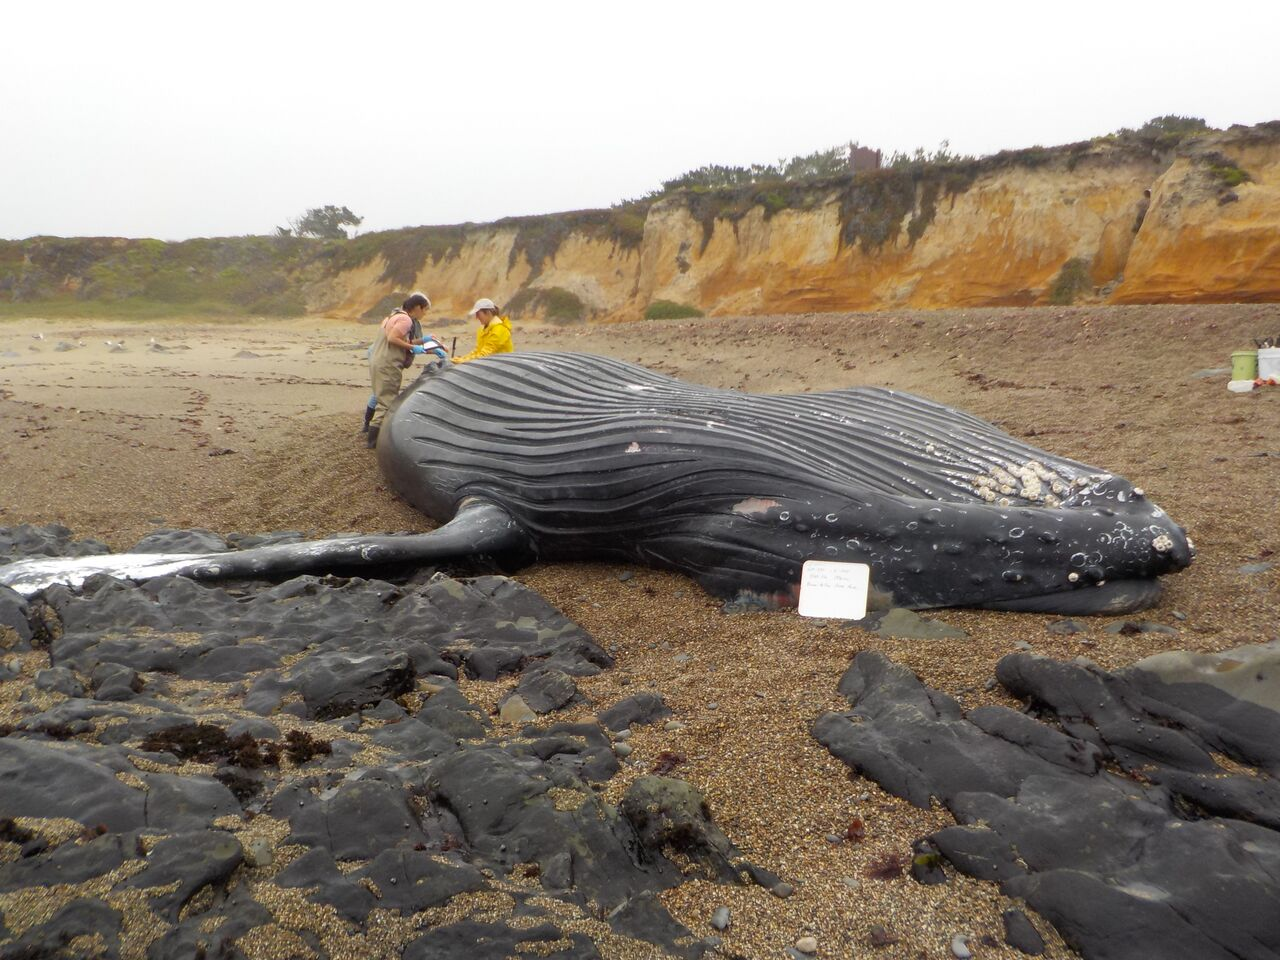 California san mateo county pescadero - Earlier This Month Scientists From The Two Organizations Responded To A 30 Foot Male Humpback Whale That Also Washed Ashore At Bean Hollow State Beach And